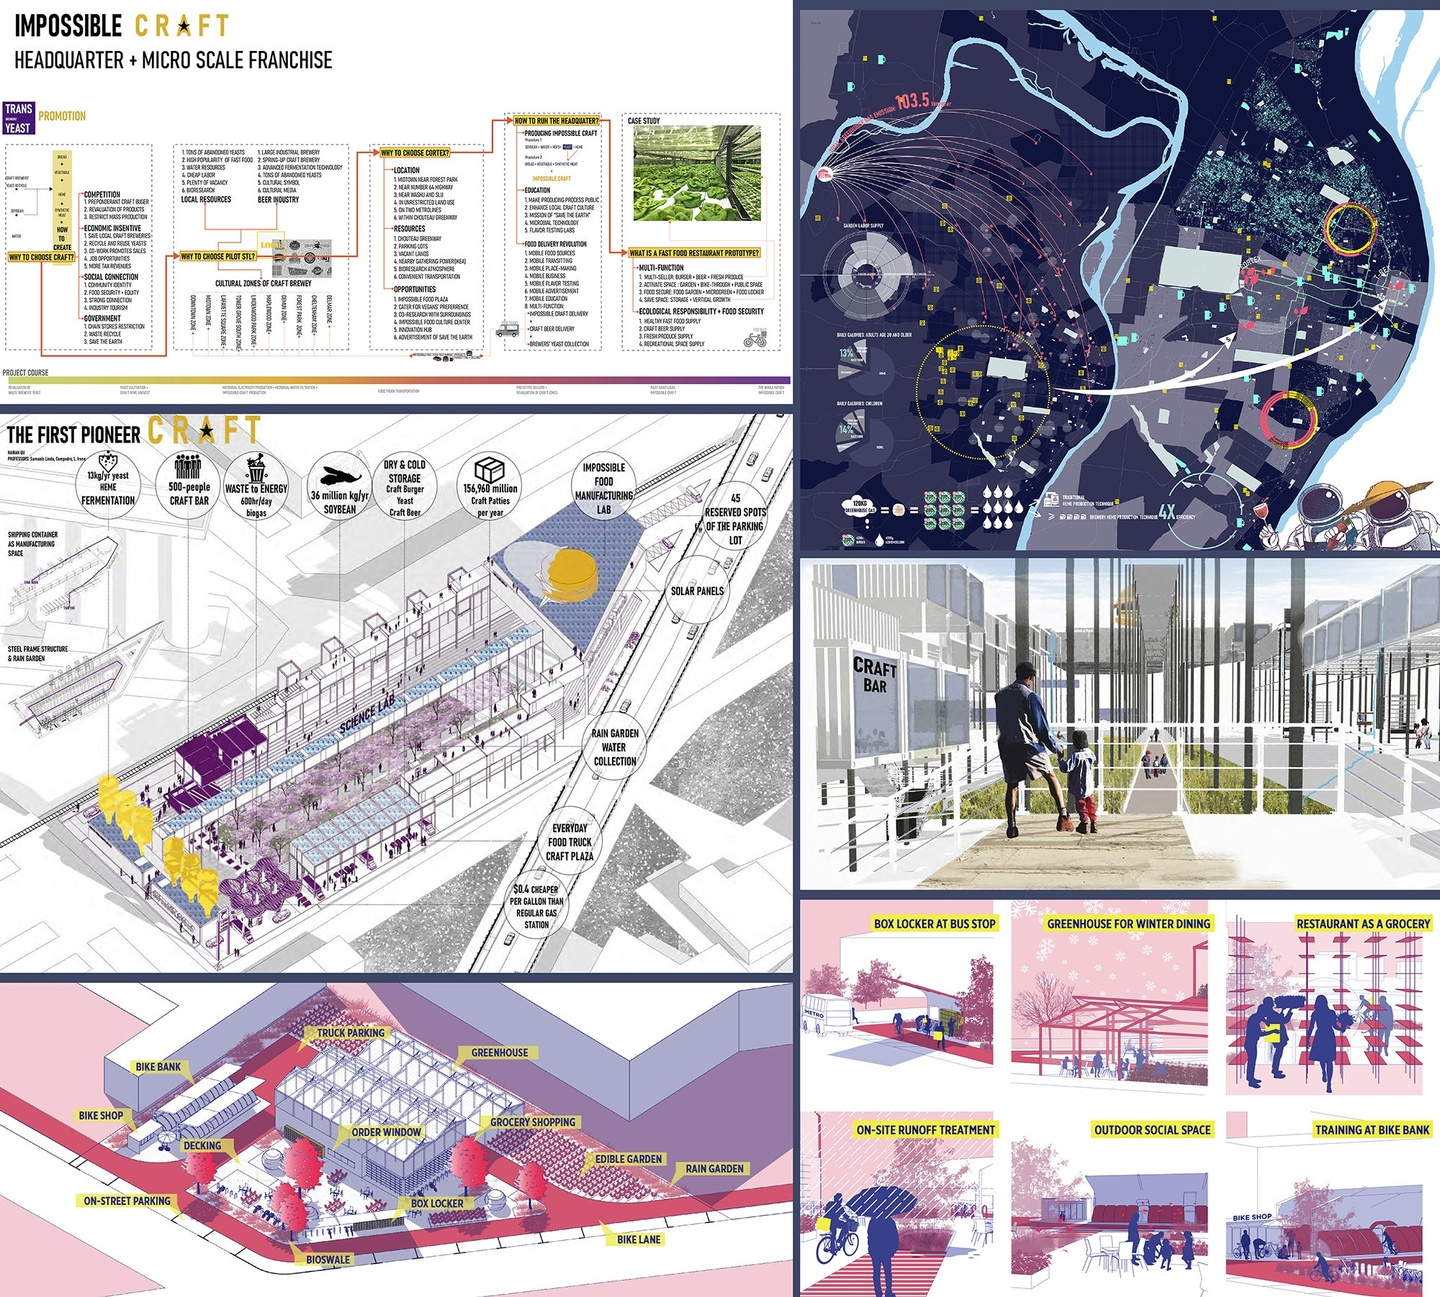 Composite of five images, featuring framework plans and renderings for a design proposal.